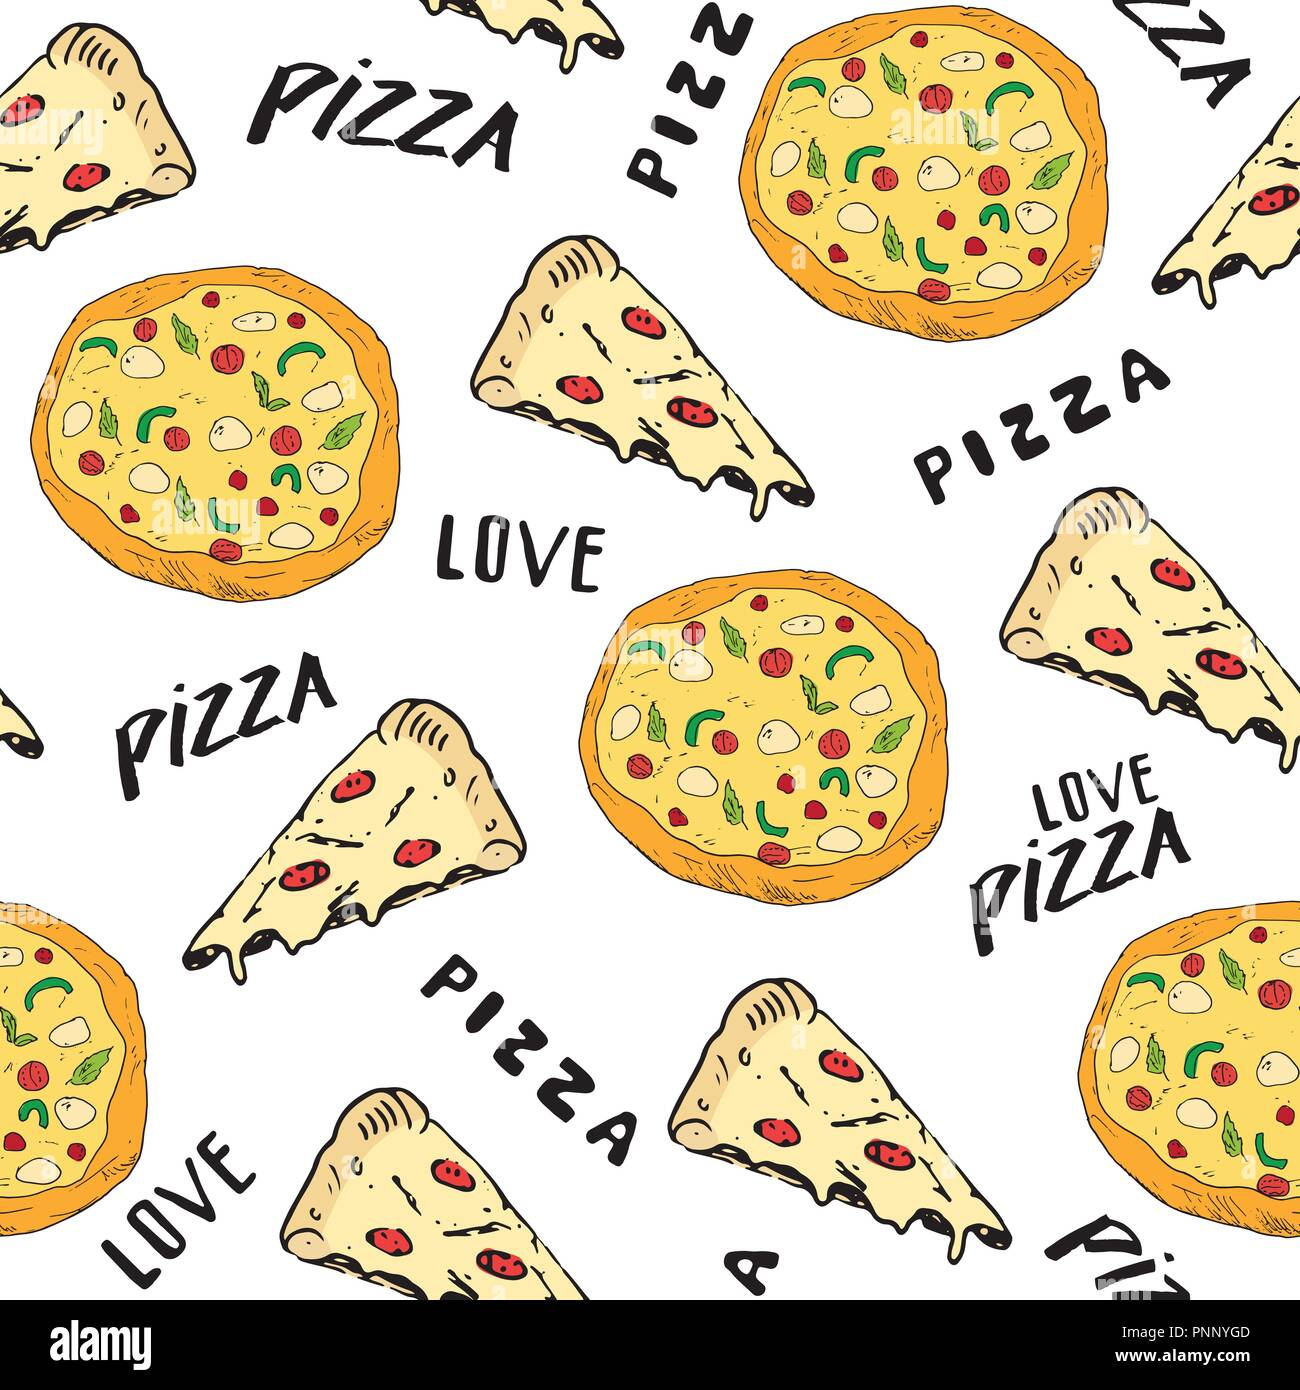 Pizza seamless pattern hand drawn sketch  Pizza slice